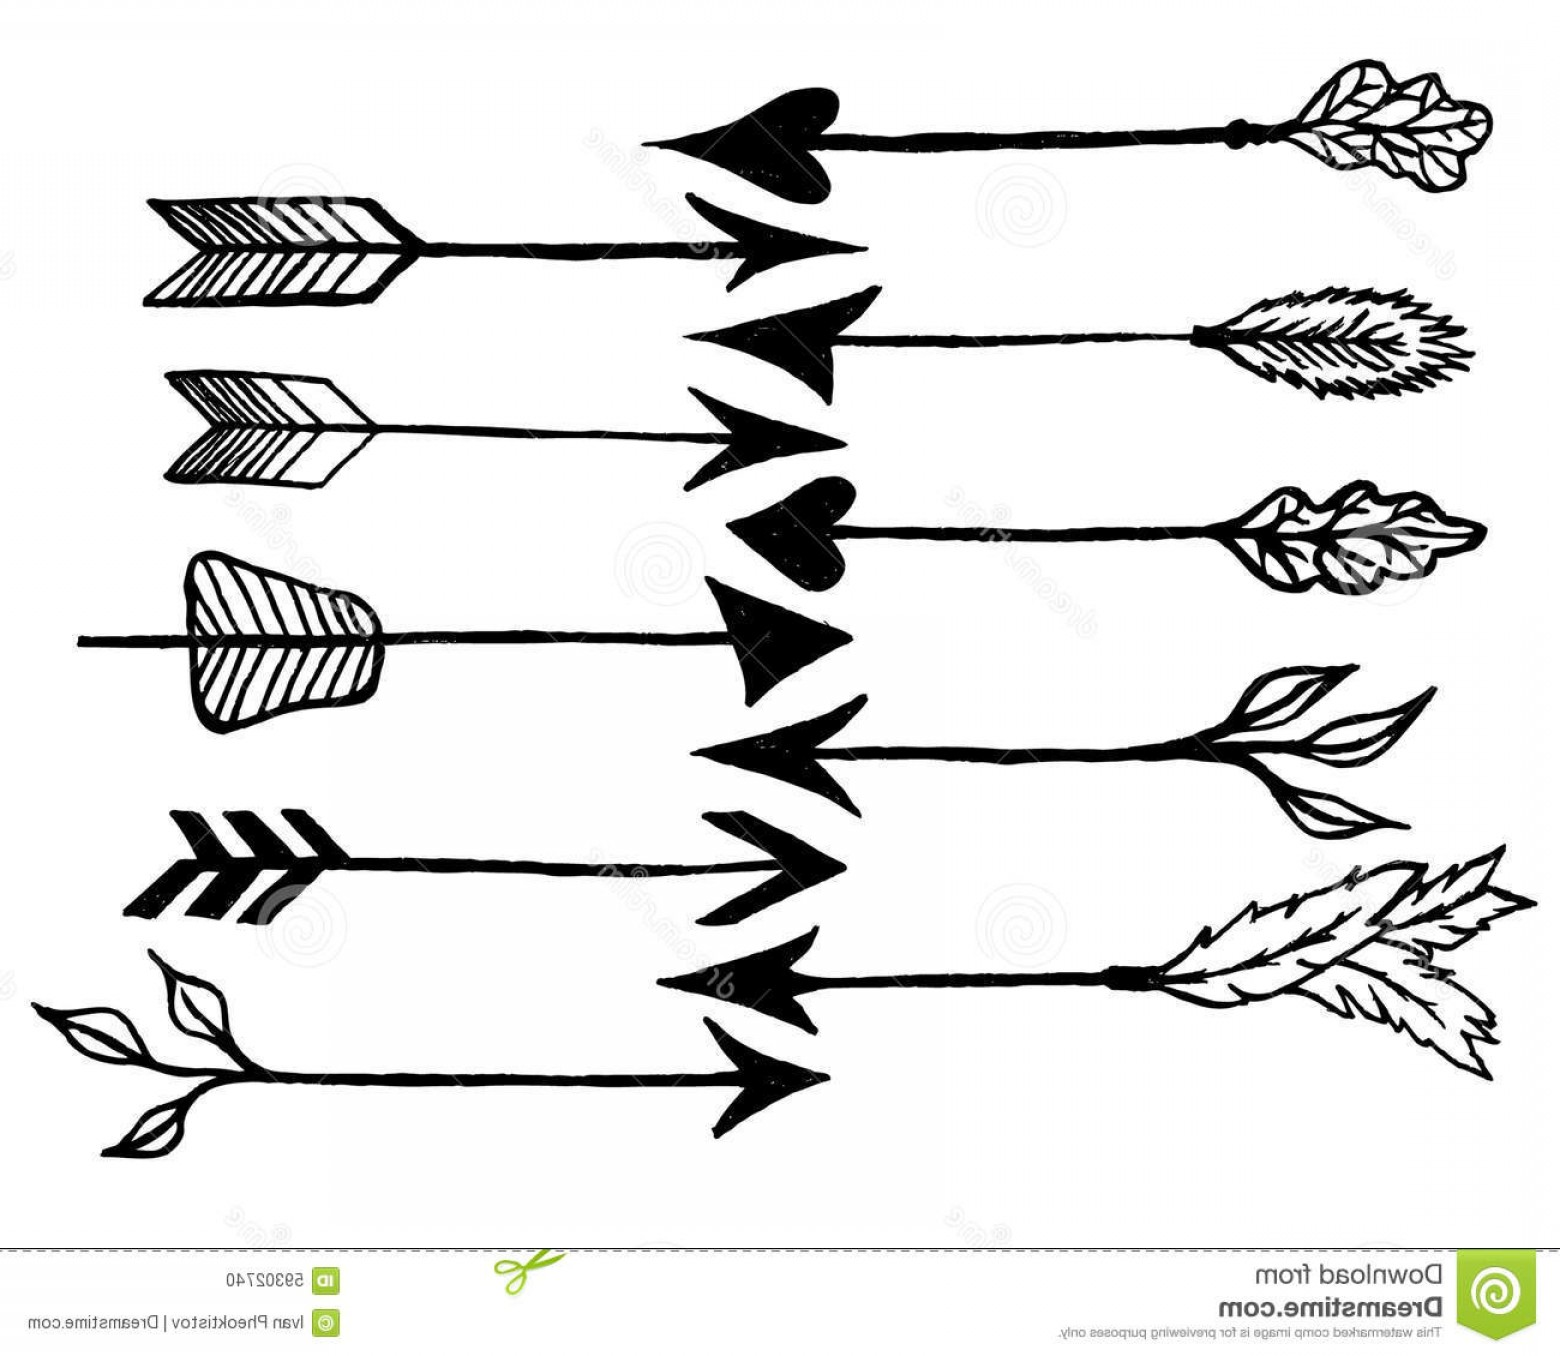 Small Arrow Vector Stock Illustration Rustic Arrows Cute Hand Drawn Doodles Set Tribal Ethnic Hipster